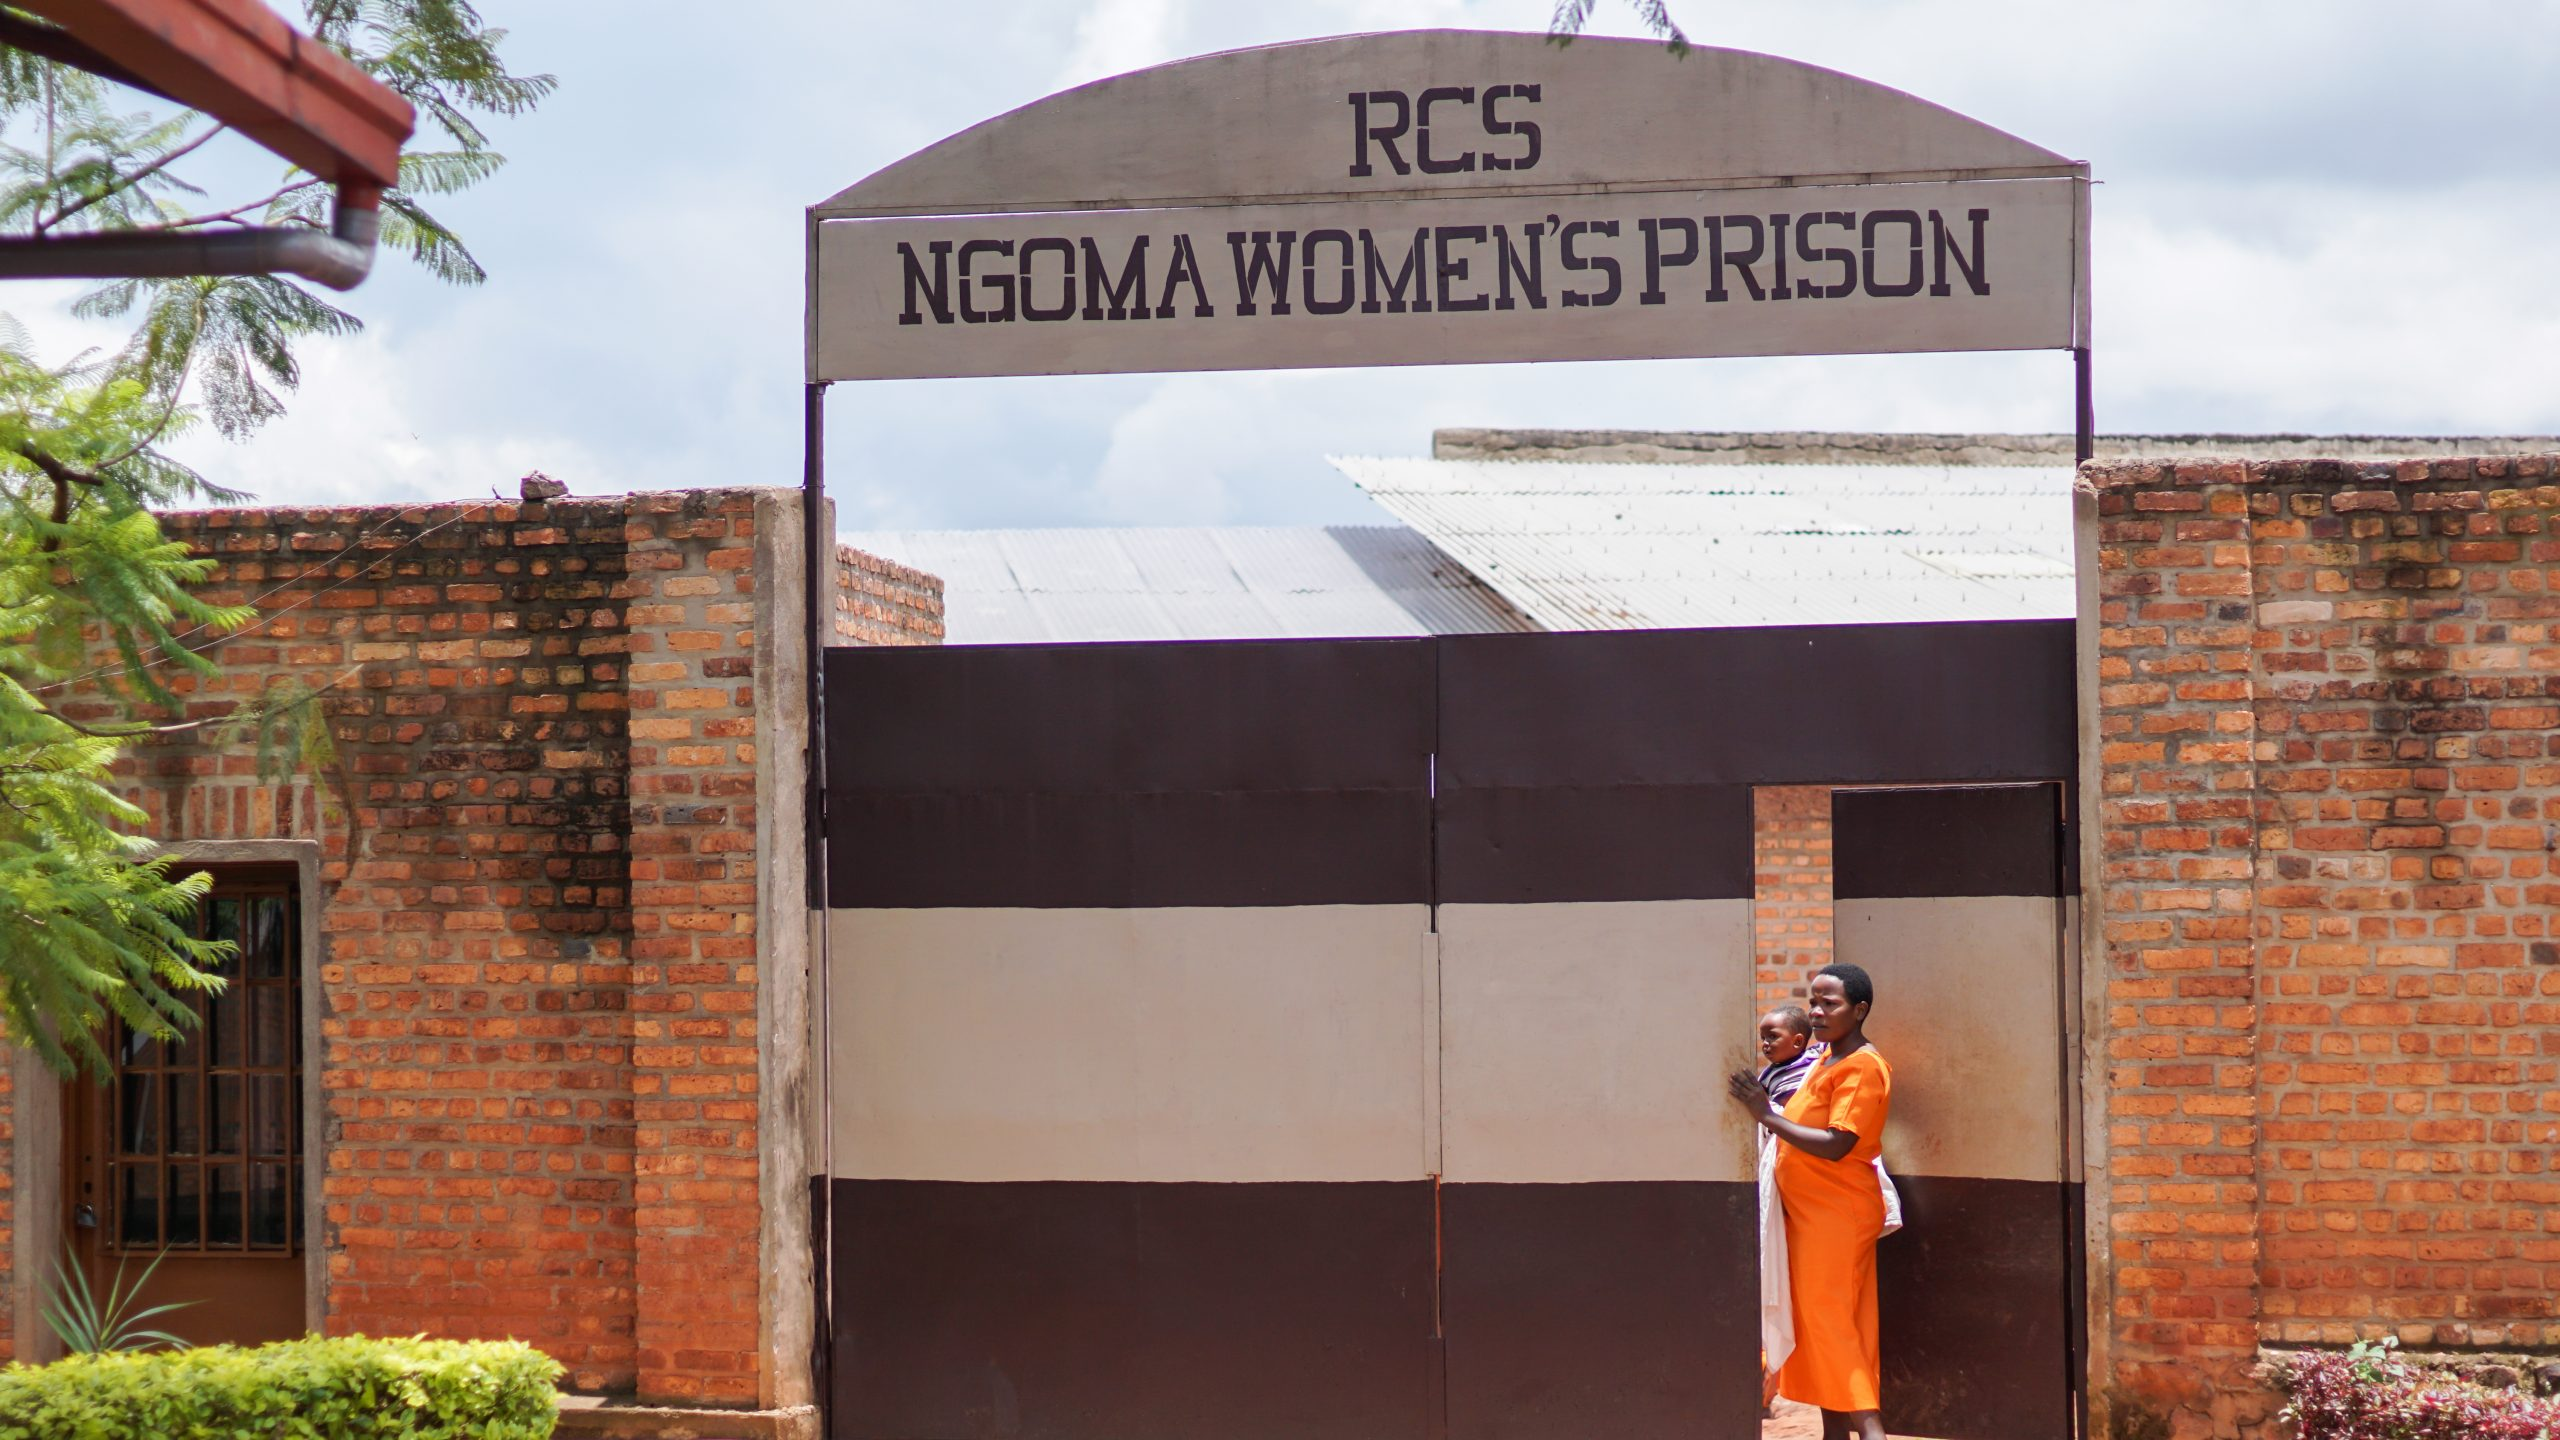 Around 96000 Rwandan women have been convicted on genocide charges for their involvement in the mass killings and are serving their sentences in 13 prisons across Rwanda.